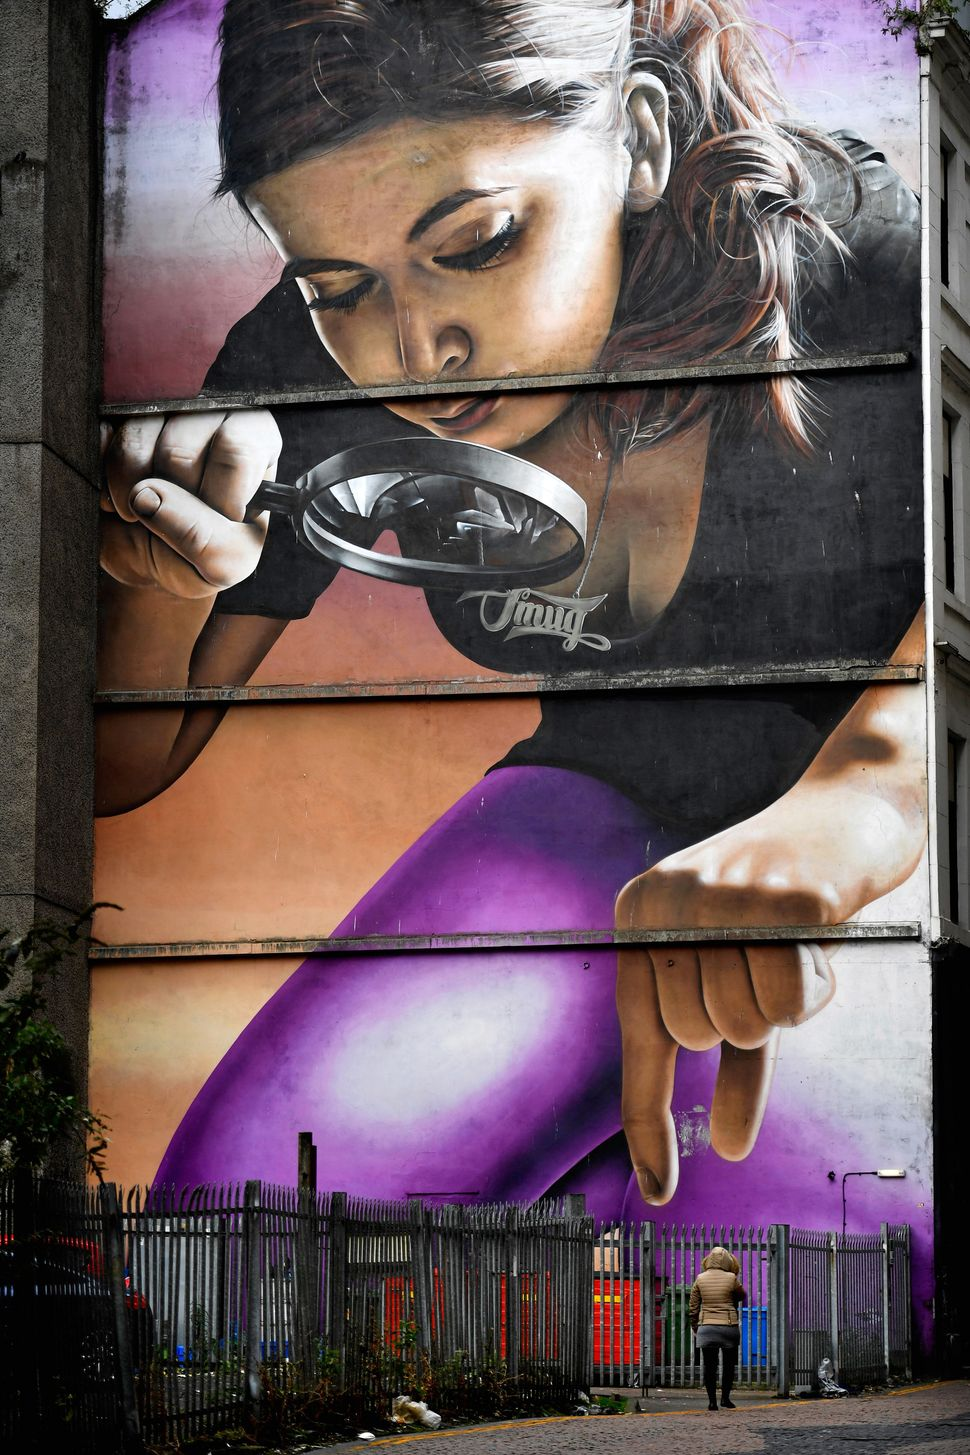 A woman walks past one of the murals in Mitchell Lane on Oct. 26 in Glasgow, Scotland. The murals have been appearing across